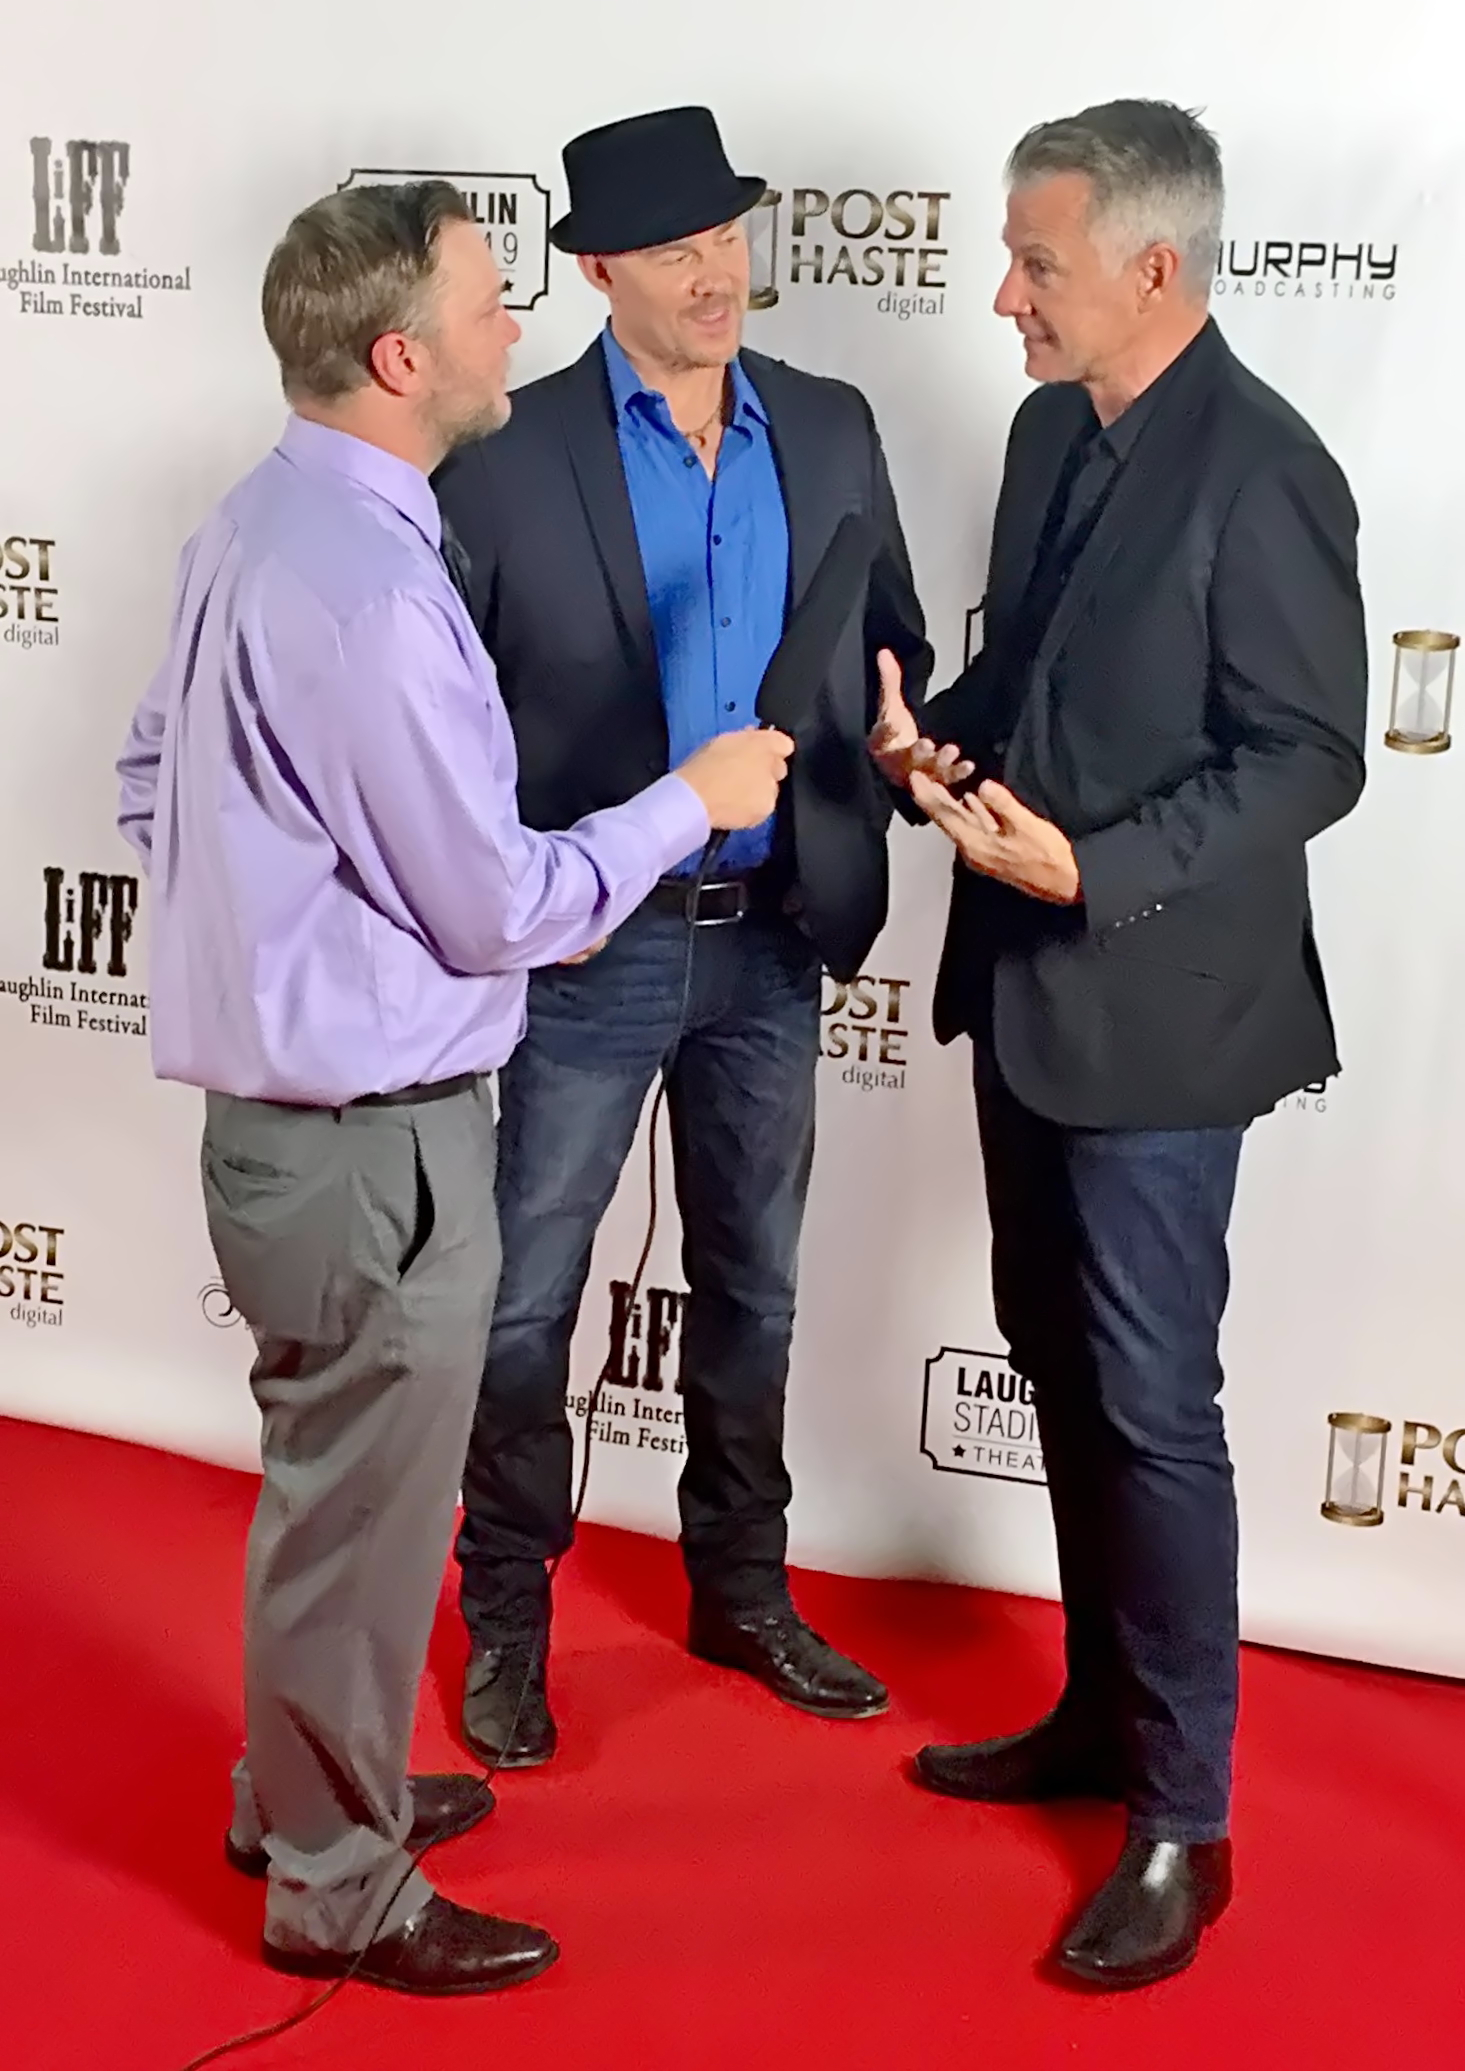 """Producer Michael Nicklin and musical artist Todd Schroeder at Laughlin International Film Festival where """"Lessons in Life' won 'Best Music Video."""""""